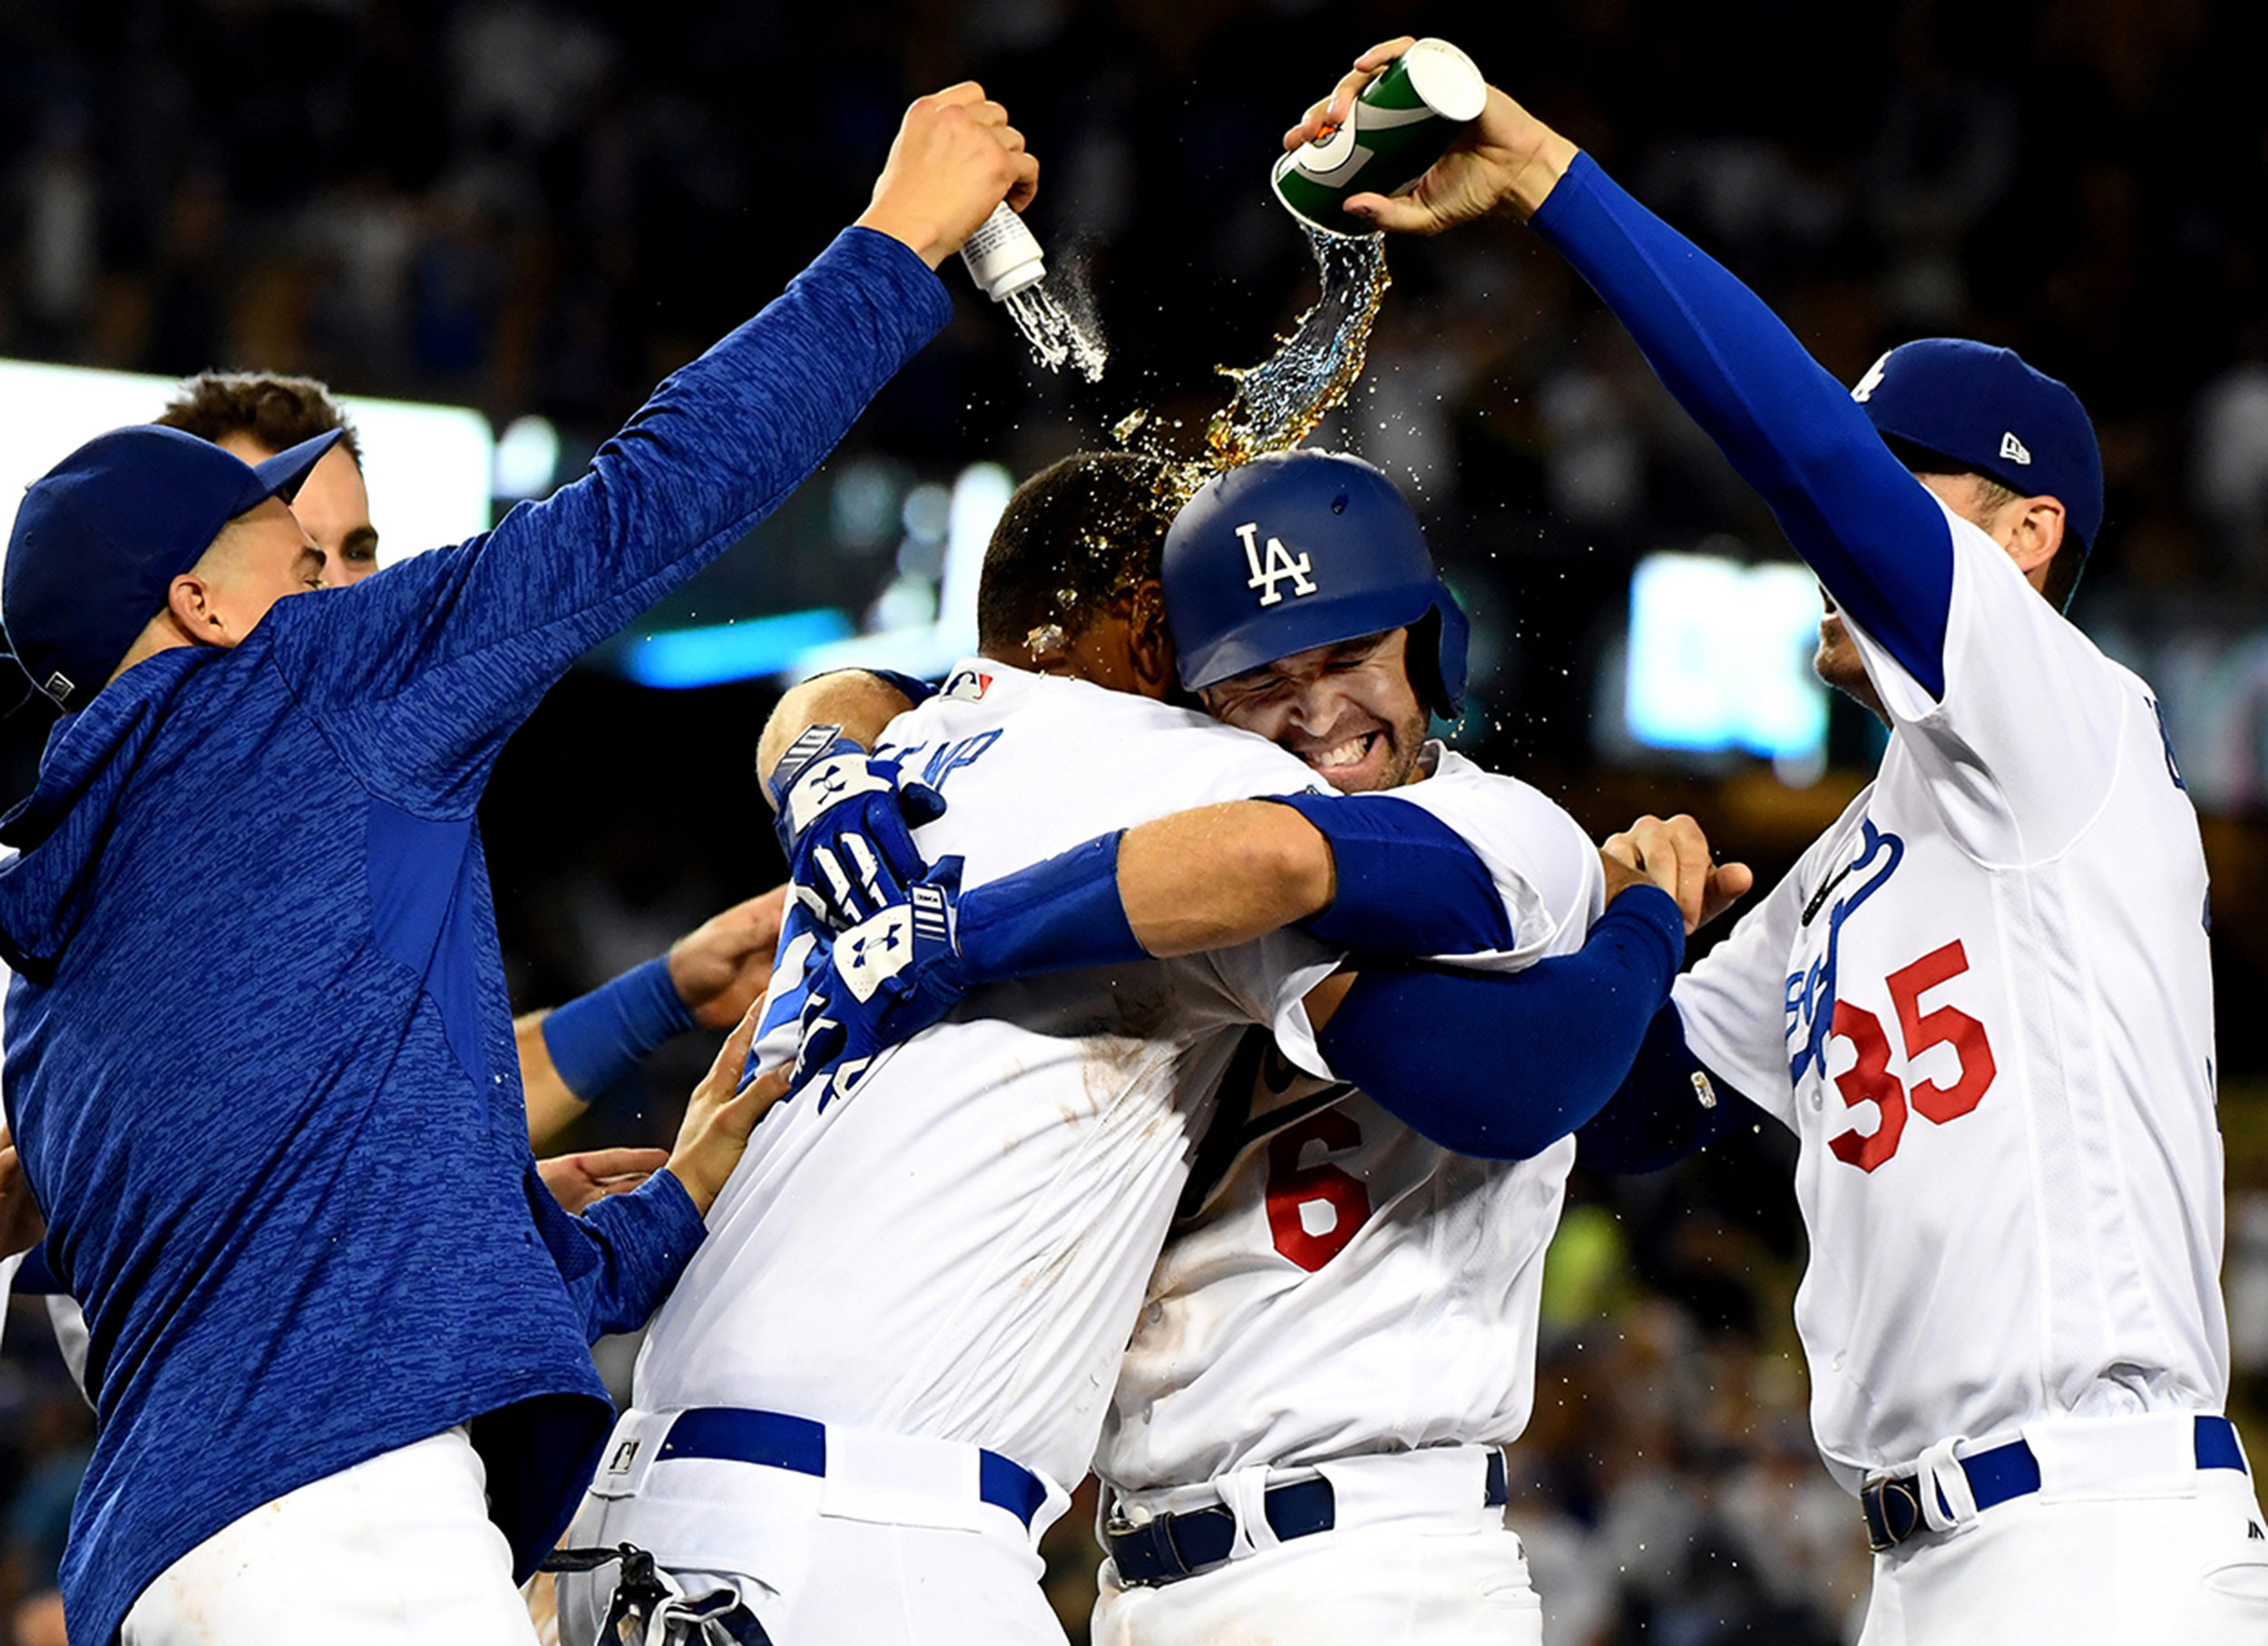 Los Angeles Dodgers' Brian Dozier (6) is mobbed by teammates after hitting the game winning sac fly ball as teammate Yasmani Grandal (not pictured) scored to defeat the San Francisco Giants 4-3 in the twelfth inning of Major League Baseball game at Dodger Stadium on Wednesday, Aug. 15, 2018 in Los Angeles.